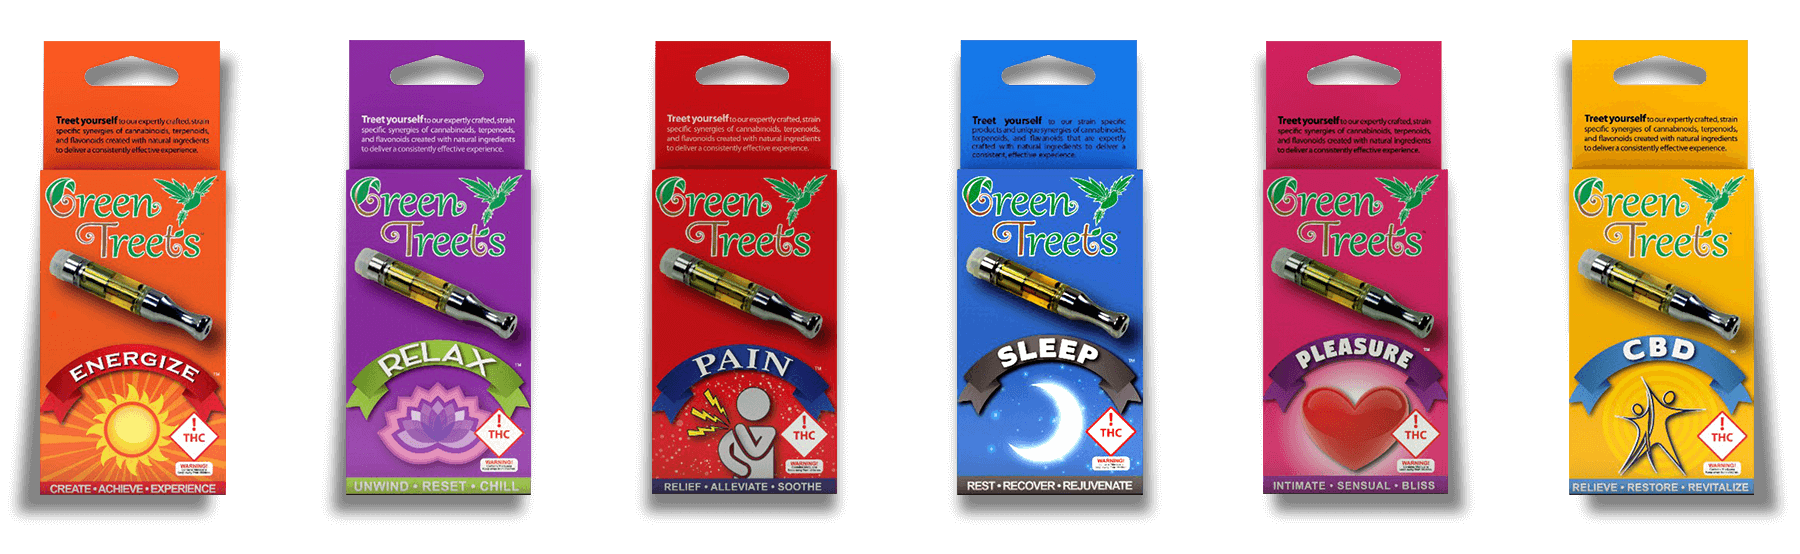 Green Treets cannabis concentrate cartridges